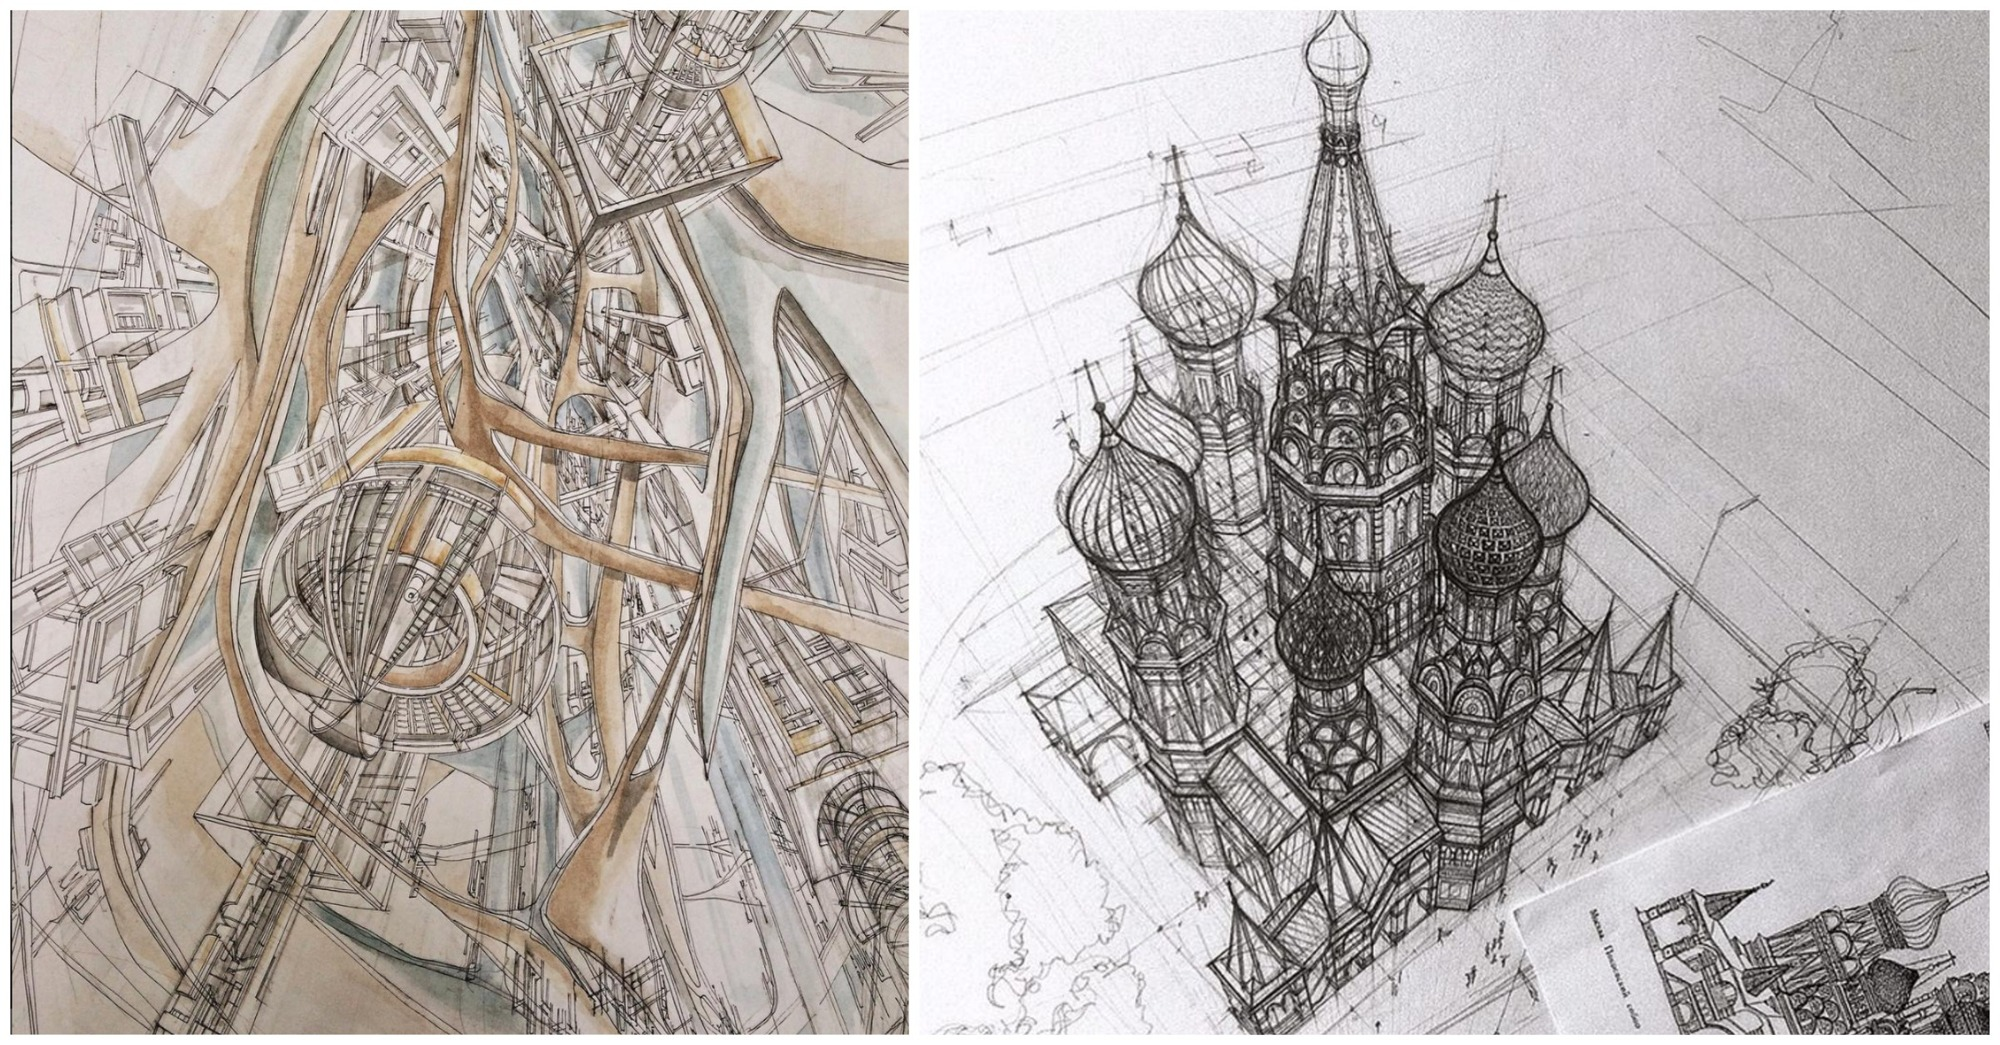 These beautiful architectural sketches show hand drawing is alive and well